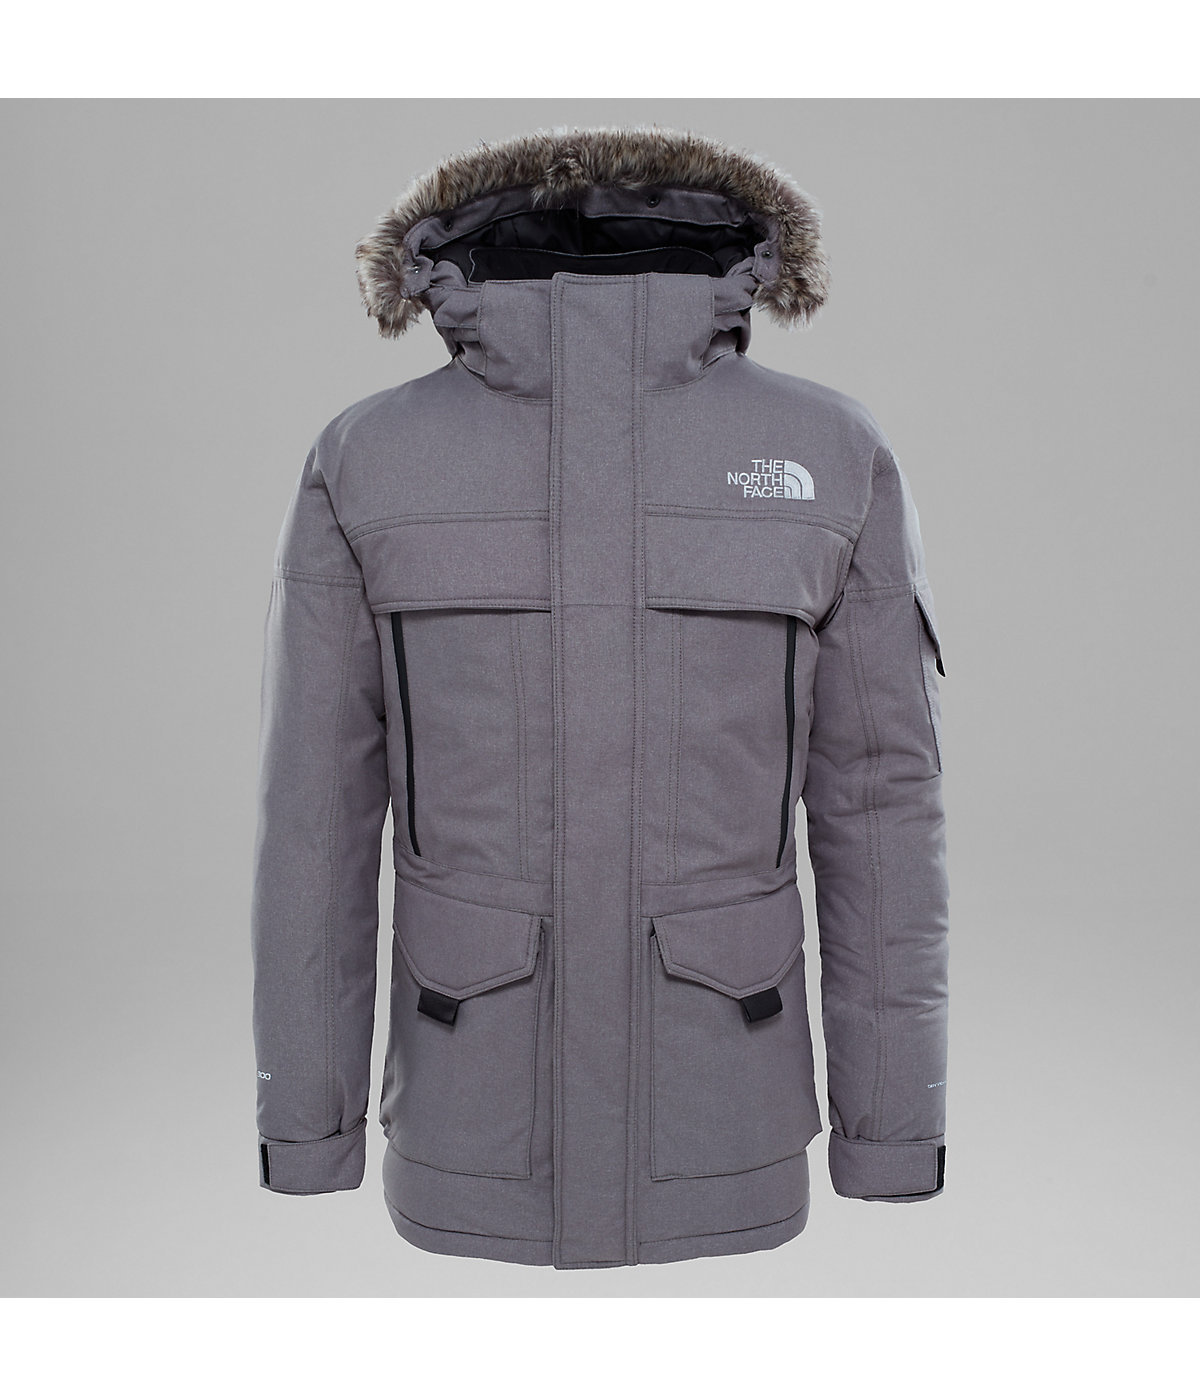 【17AW NEW】 THE NORTH FACE_men / MCMURDO 2 パーカーGY/NV